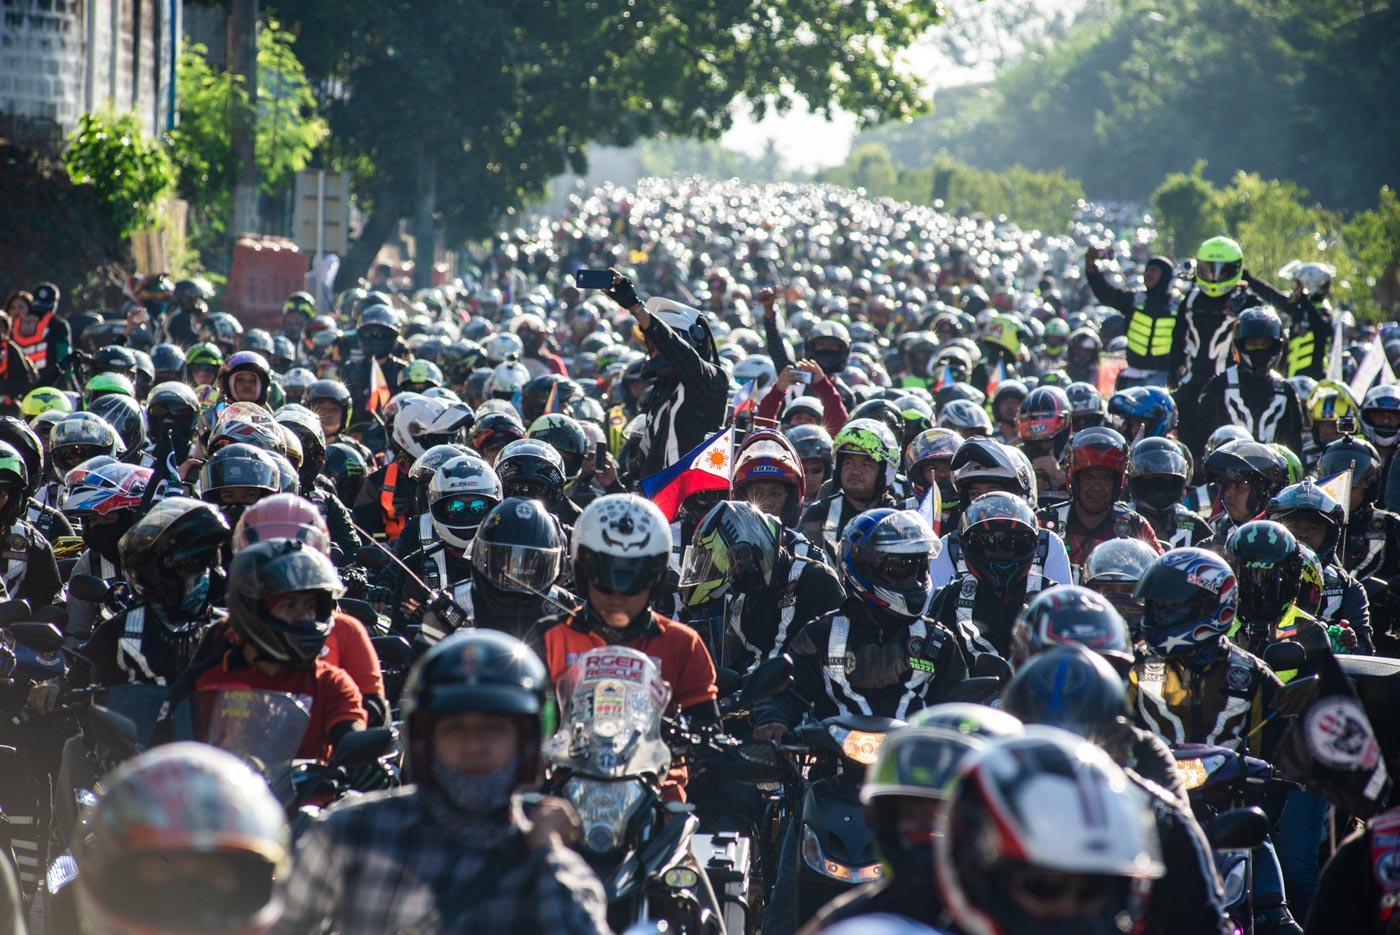 POLICE ESTIMATE. Up to 10,000 motorcycle riders joined the 'Unity Ride' on March 24, 2019, according to the Philippine National Police. Photo by Maria Tan/Rappler